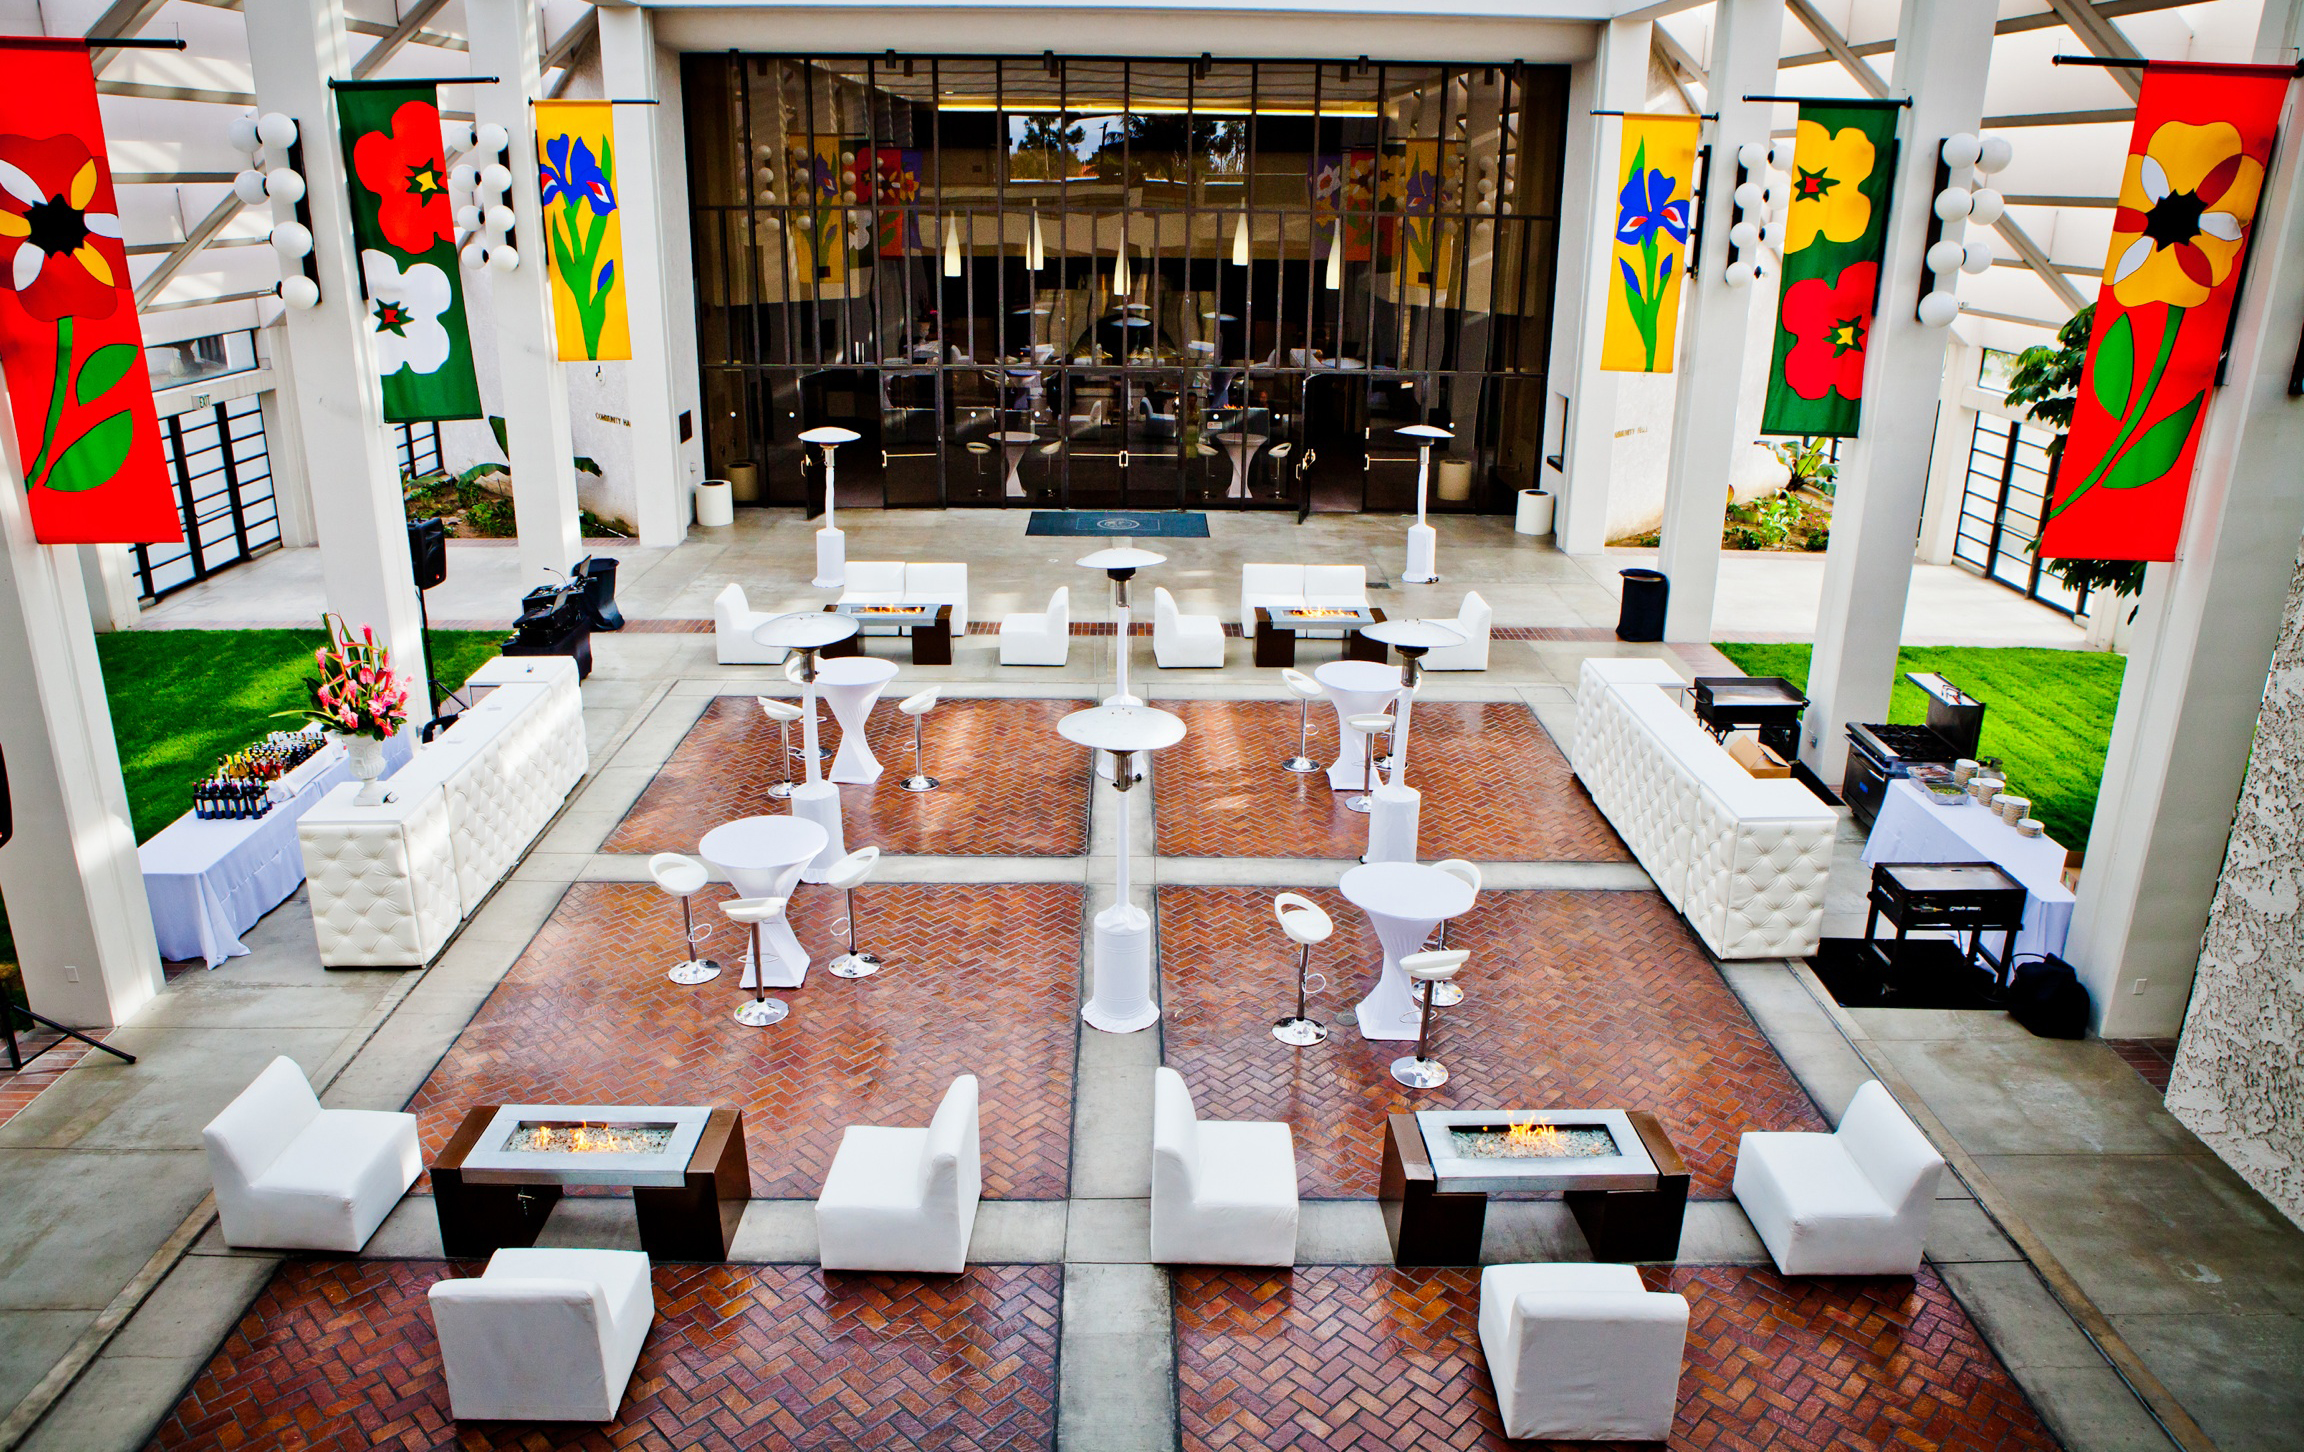 photo of Carson Center atrium set up in the daytime